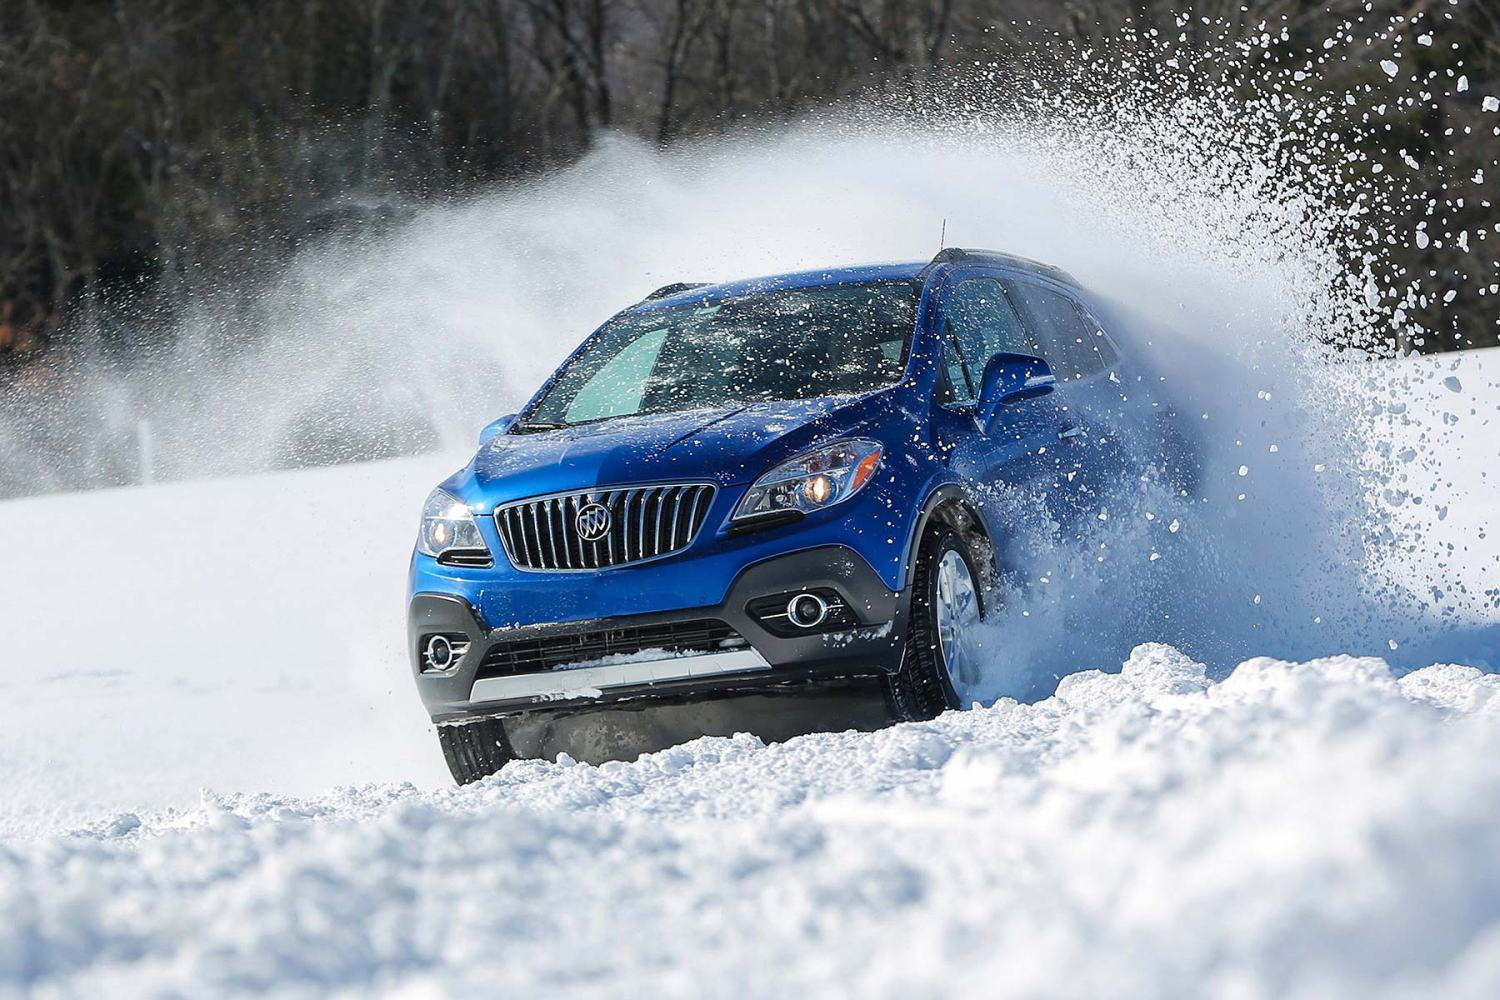 Winter driving safely